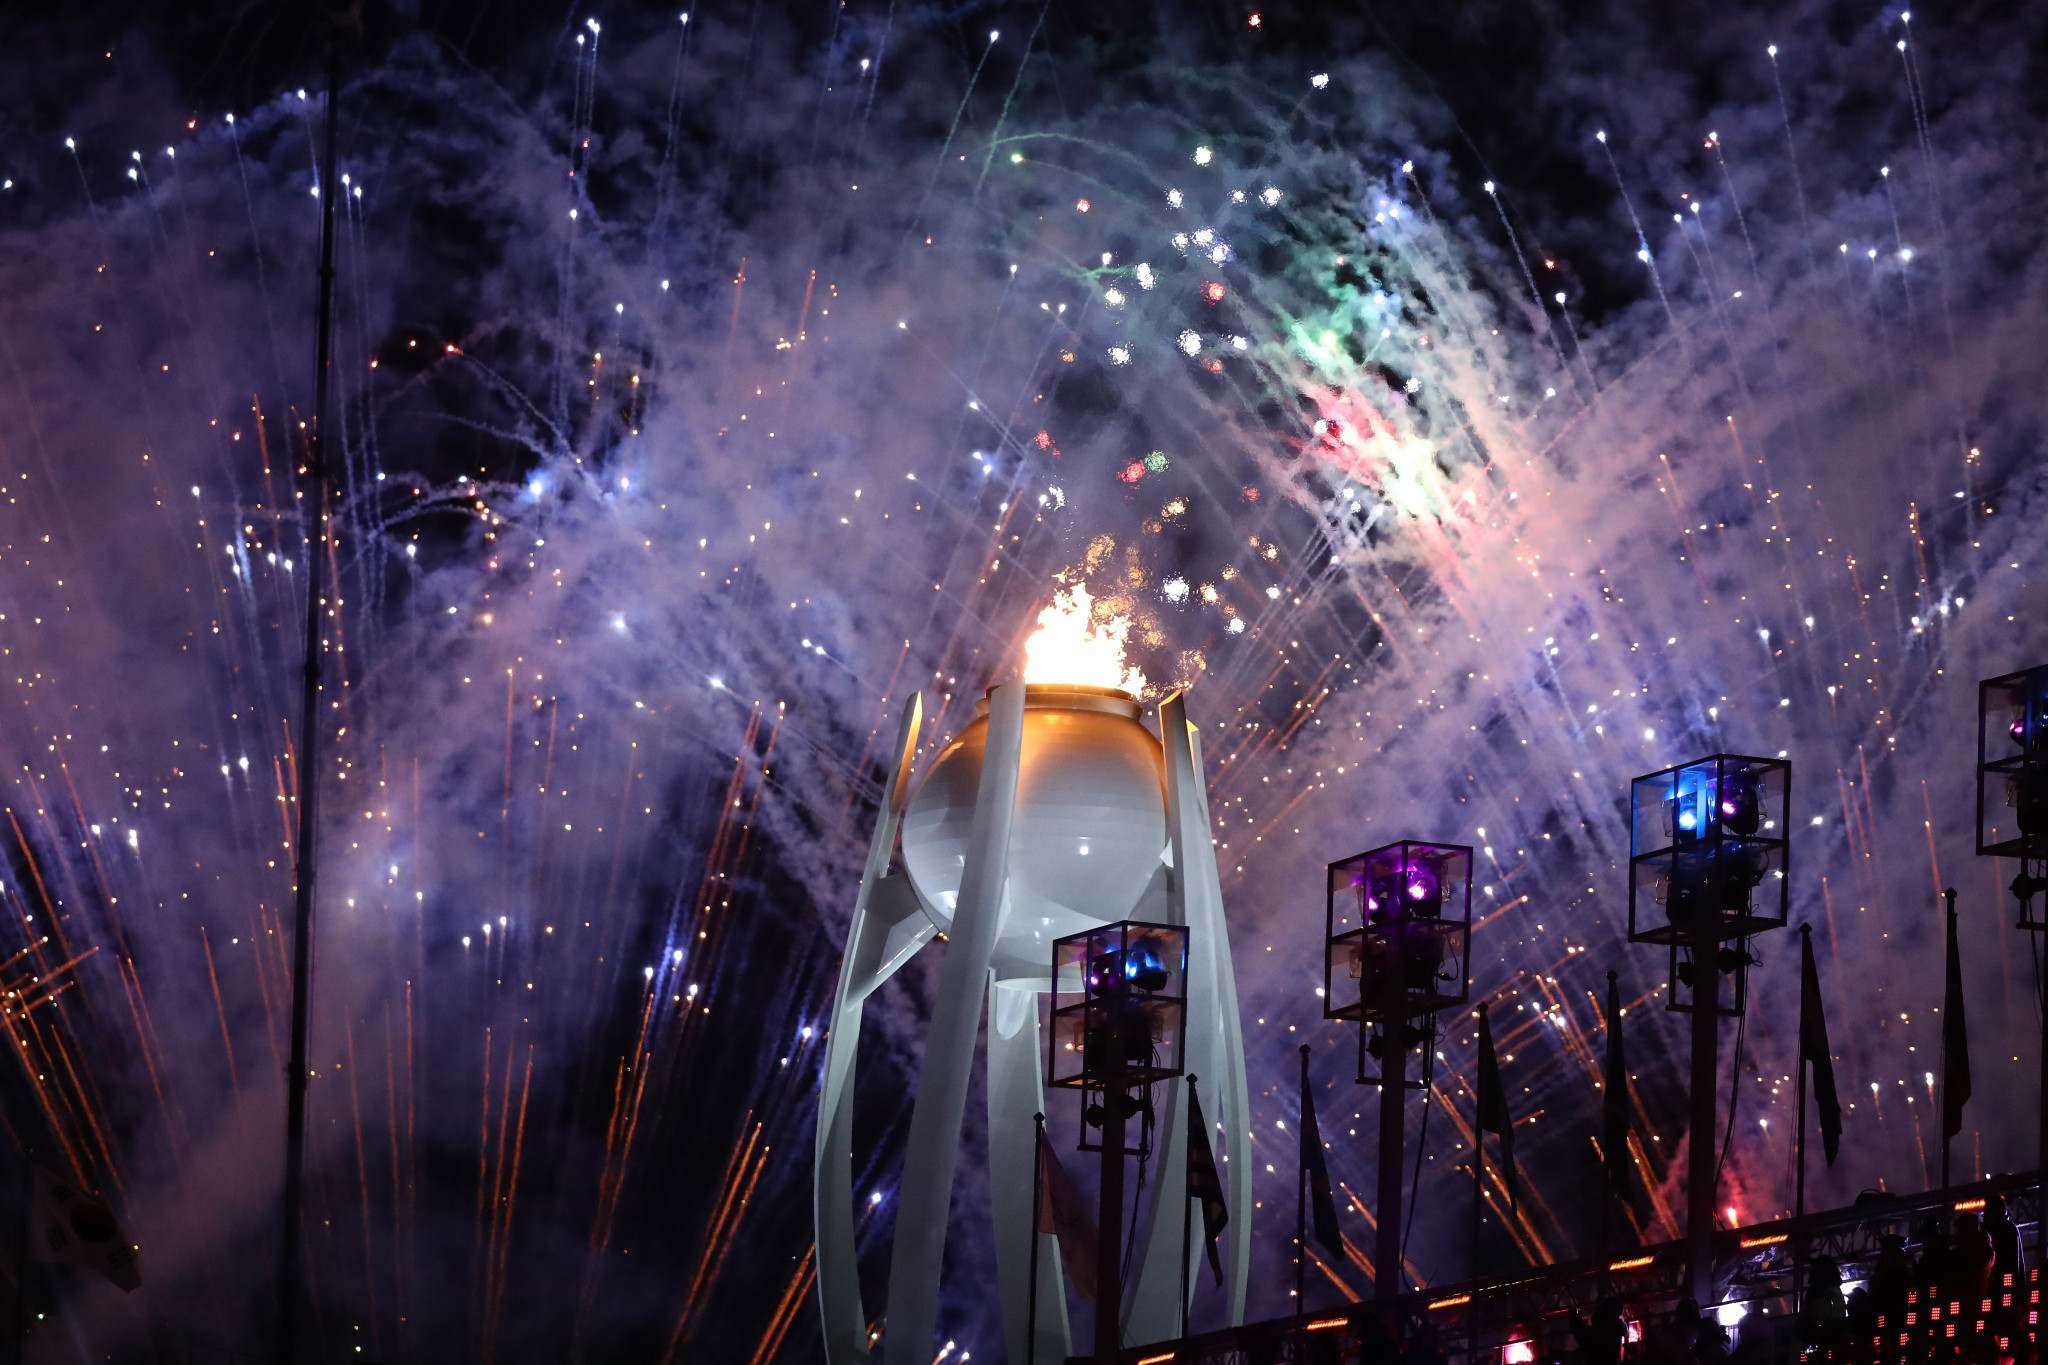 Gangwon Province to mark anniversary of Pyeongchang 2018 with number of events